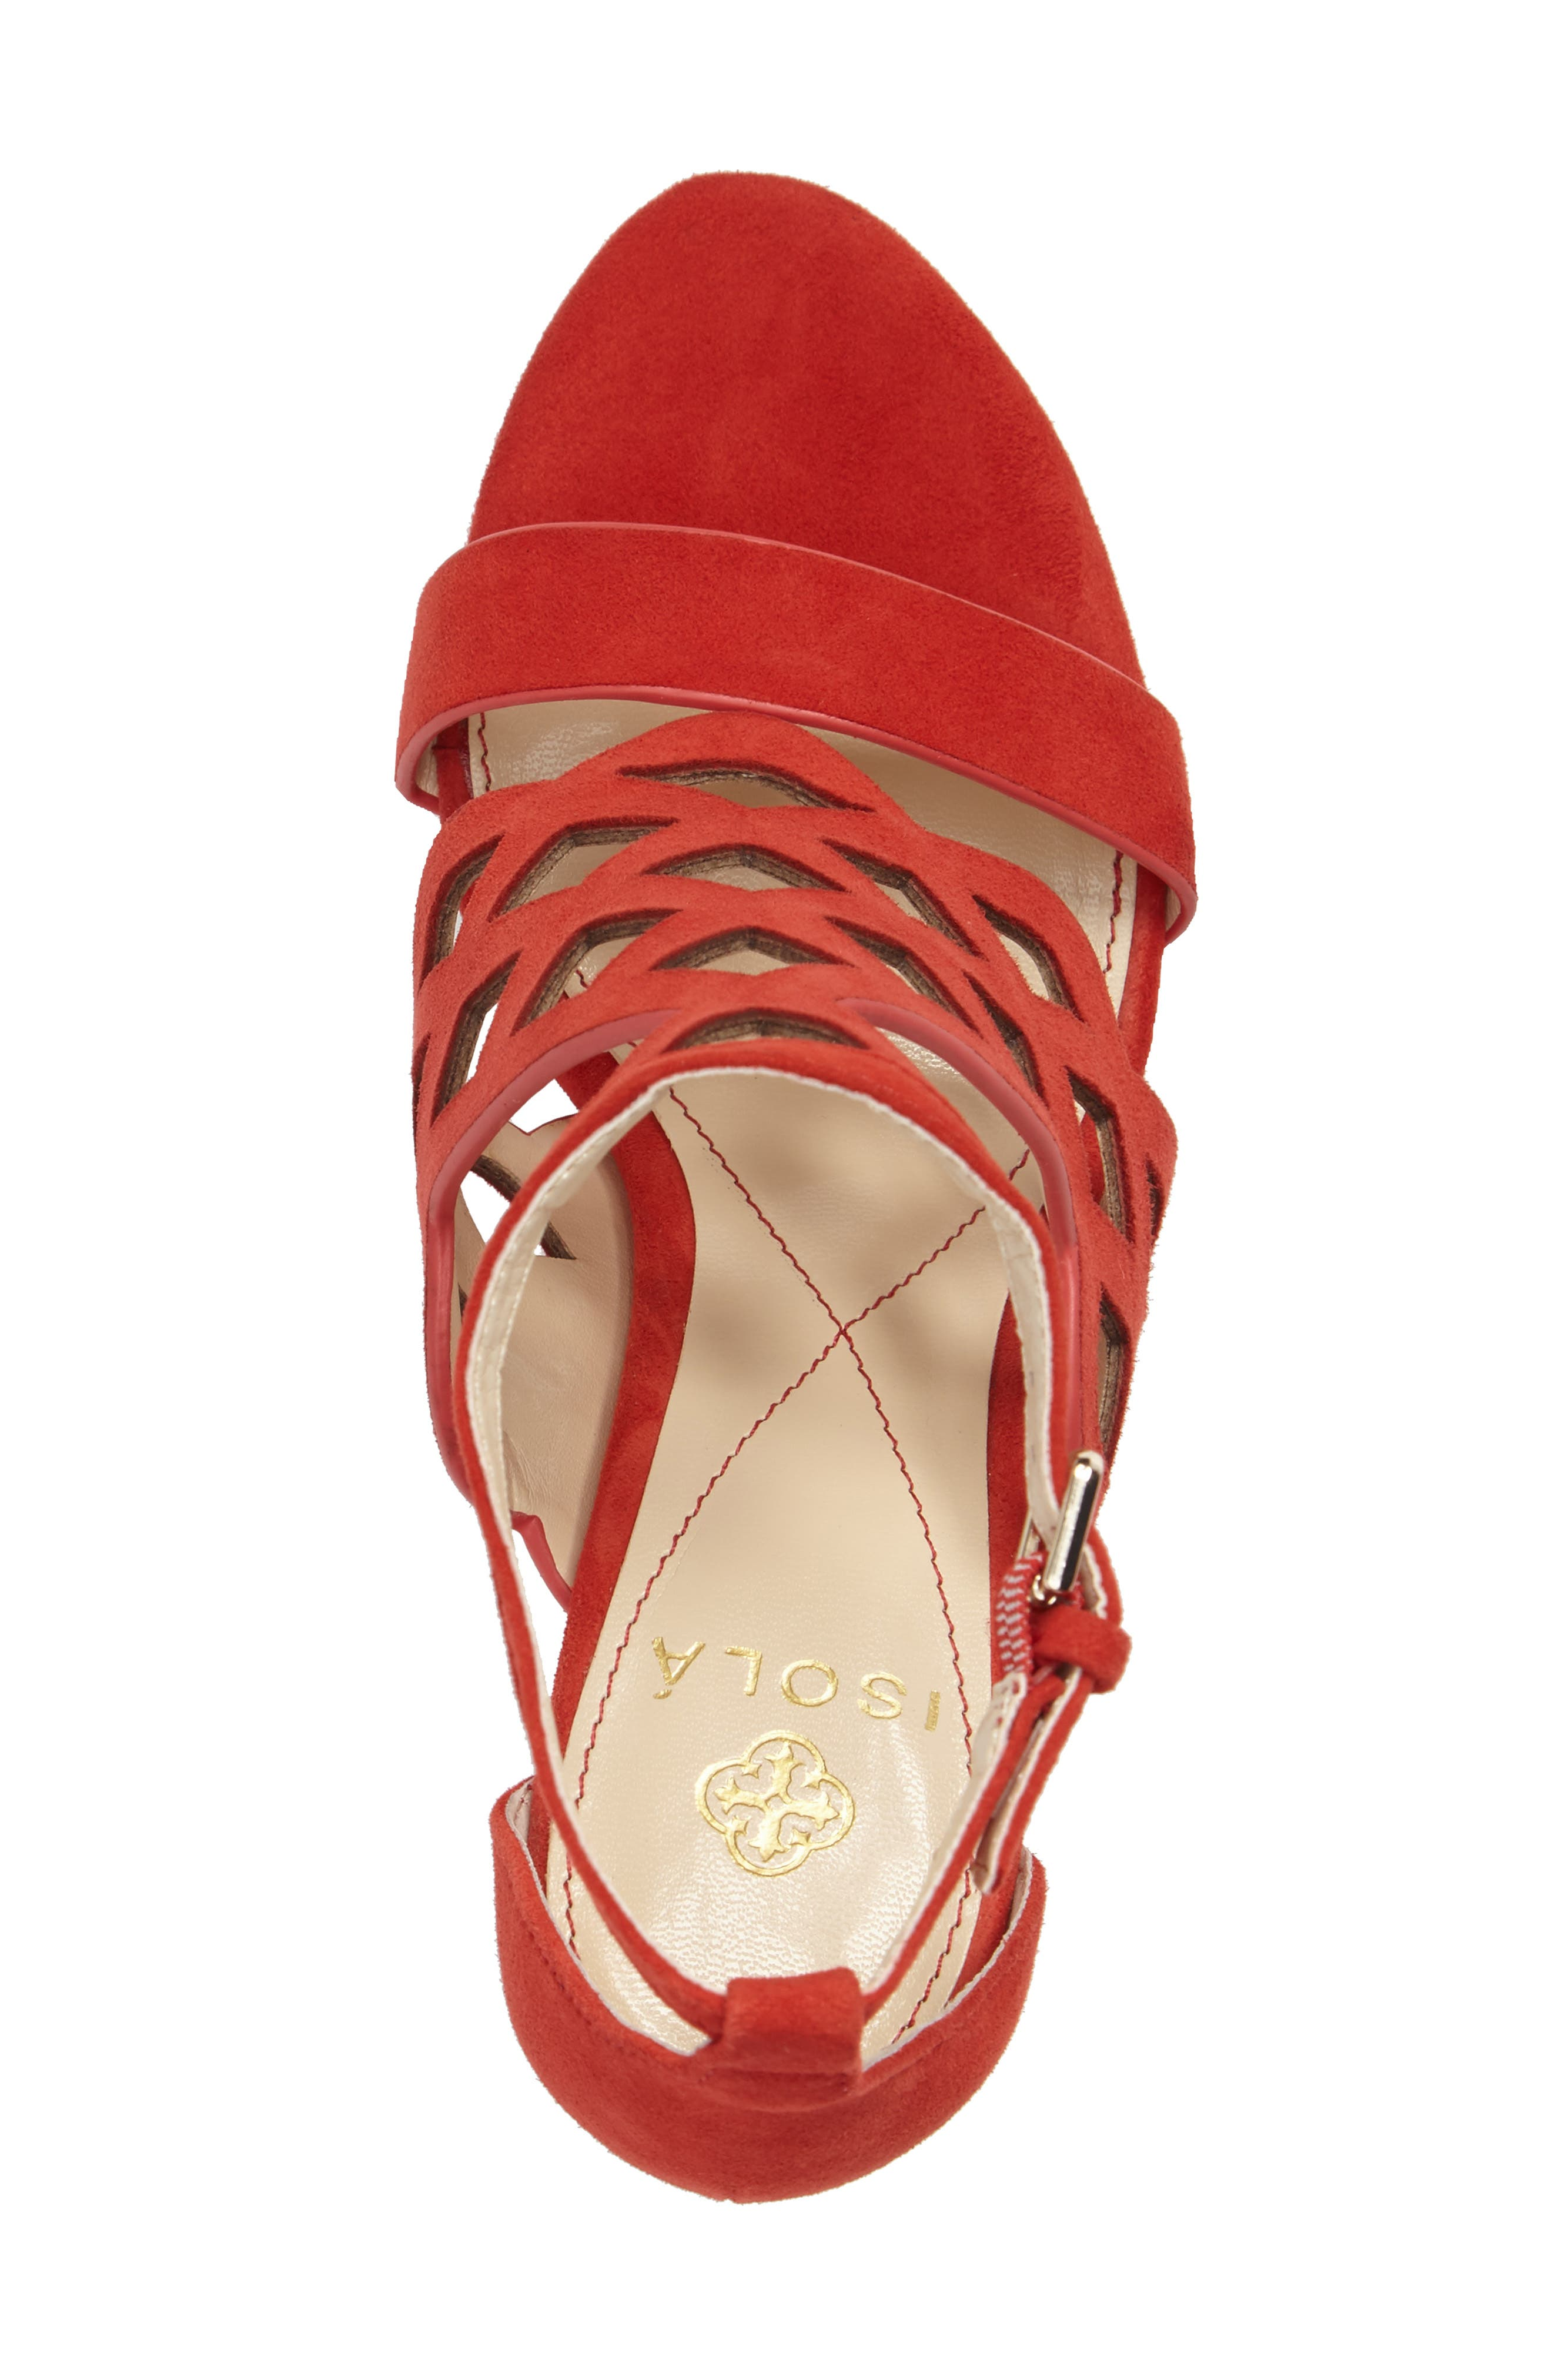 Despina Cutout Ankle Strap Sandal,                             Alternate thumbnail 4, color,                             LIPSTICK RED SUEDE